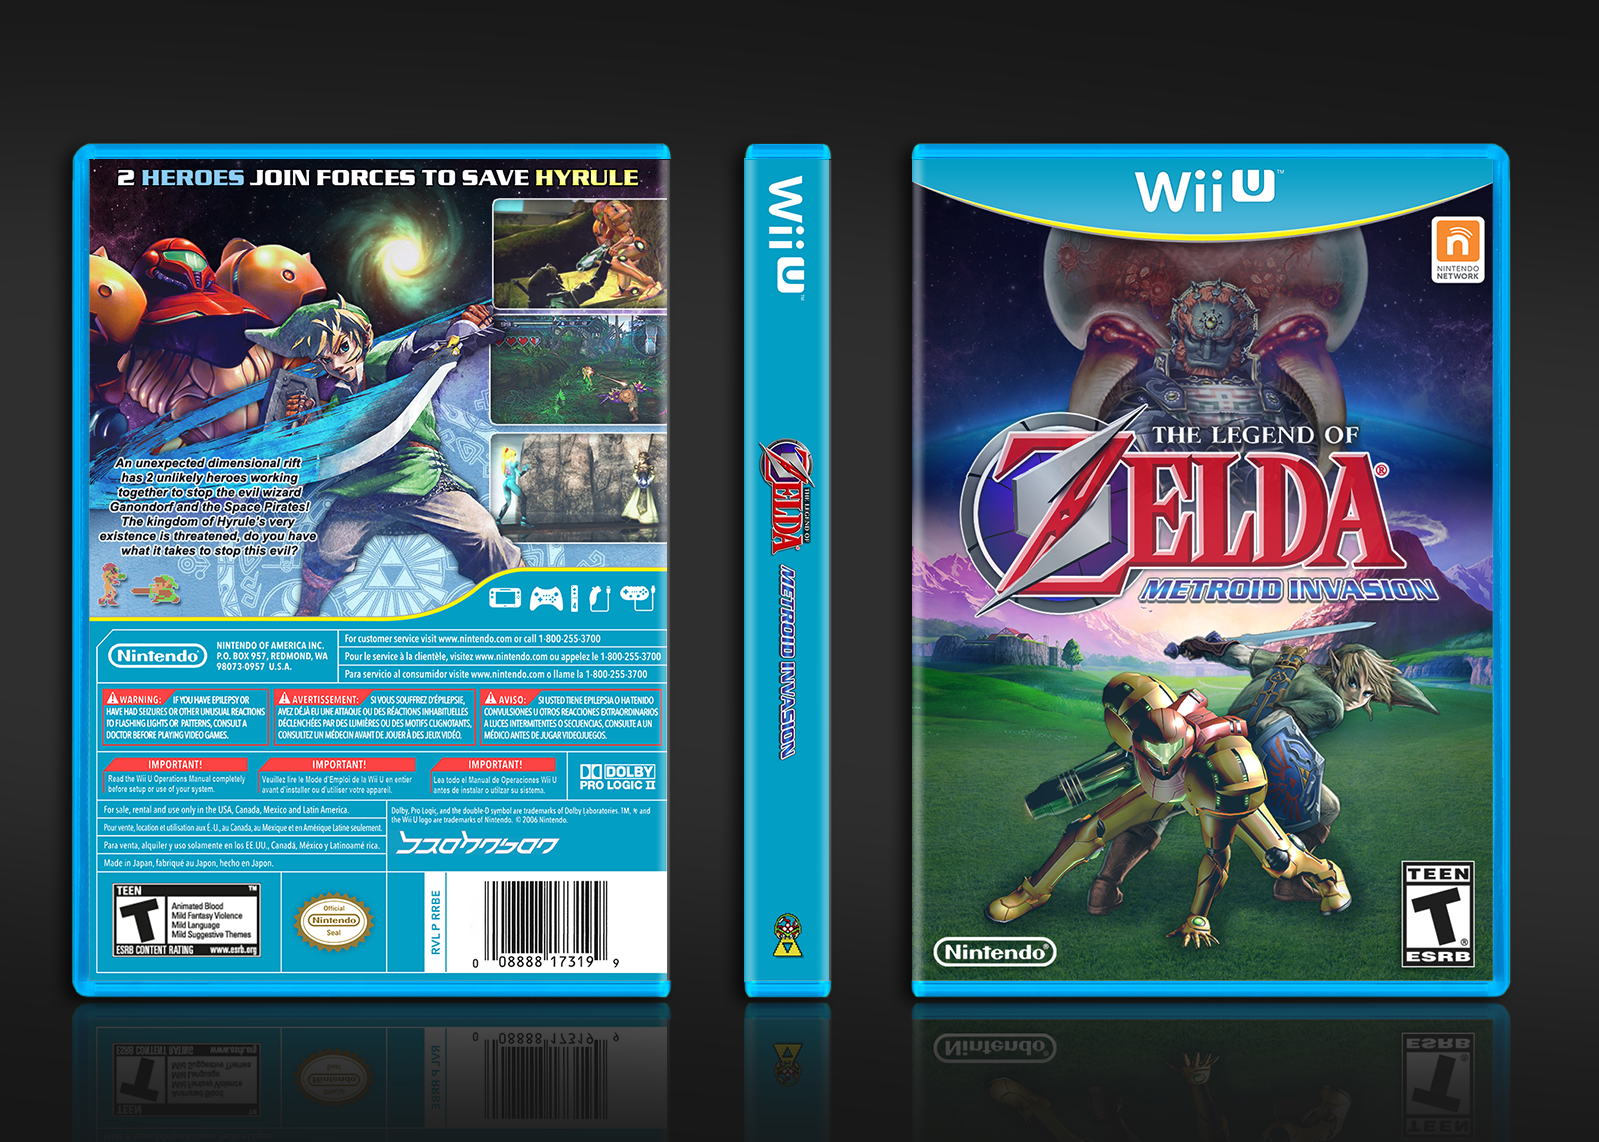 The Legend of Zelda: Metroid Invasion box cover